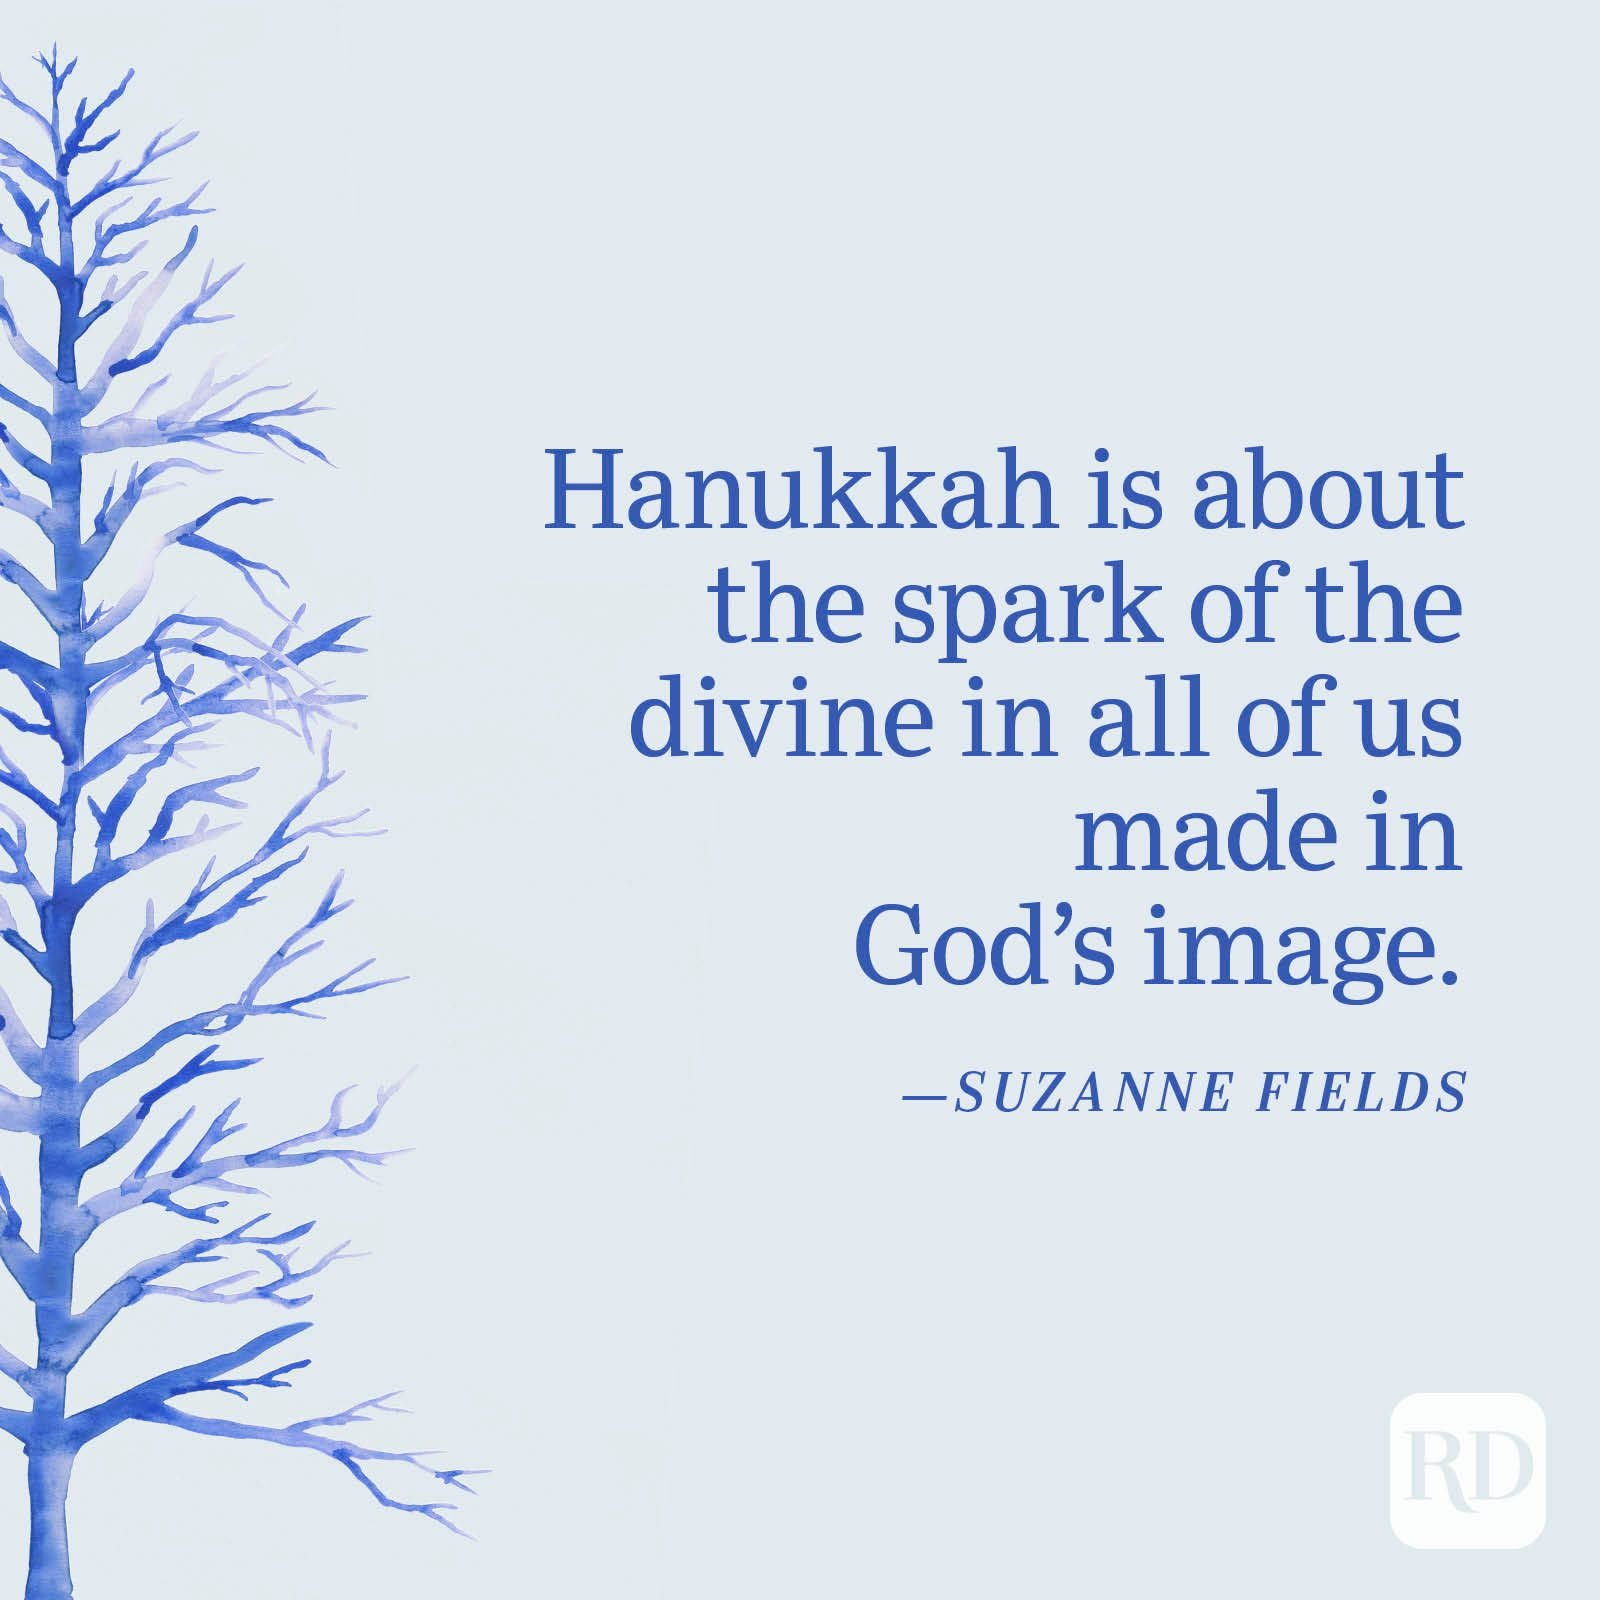 """""""Hanukkah is about the spark of the divine in all of us made in God's image."""" —Suzanne Fields"""